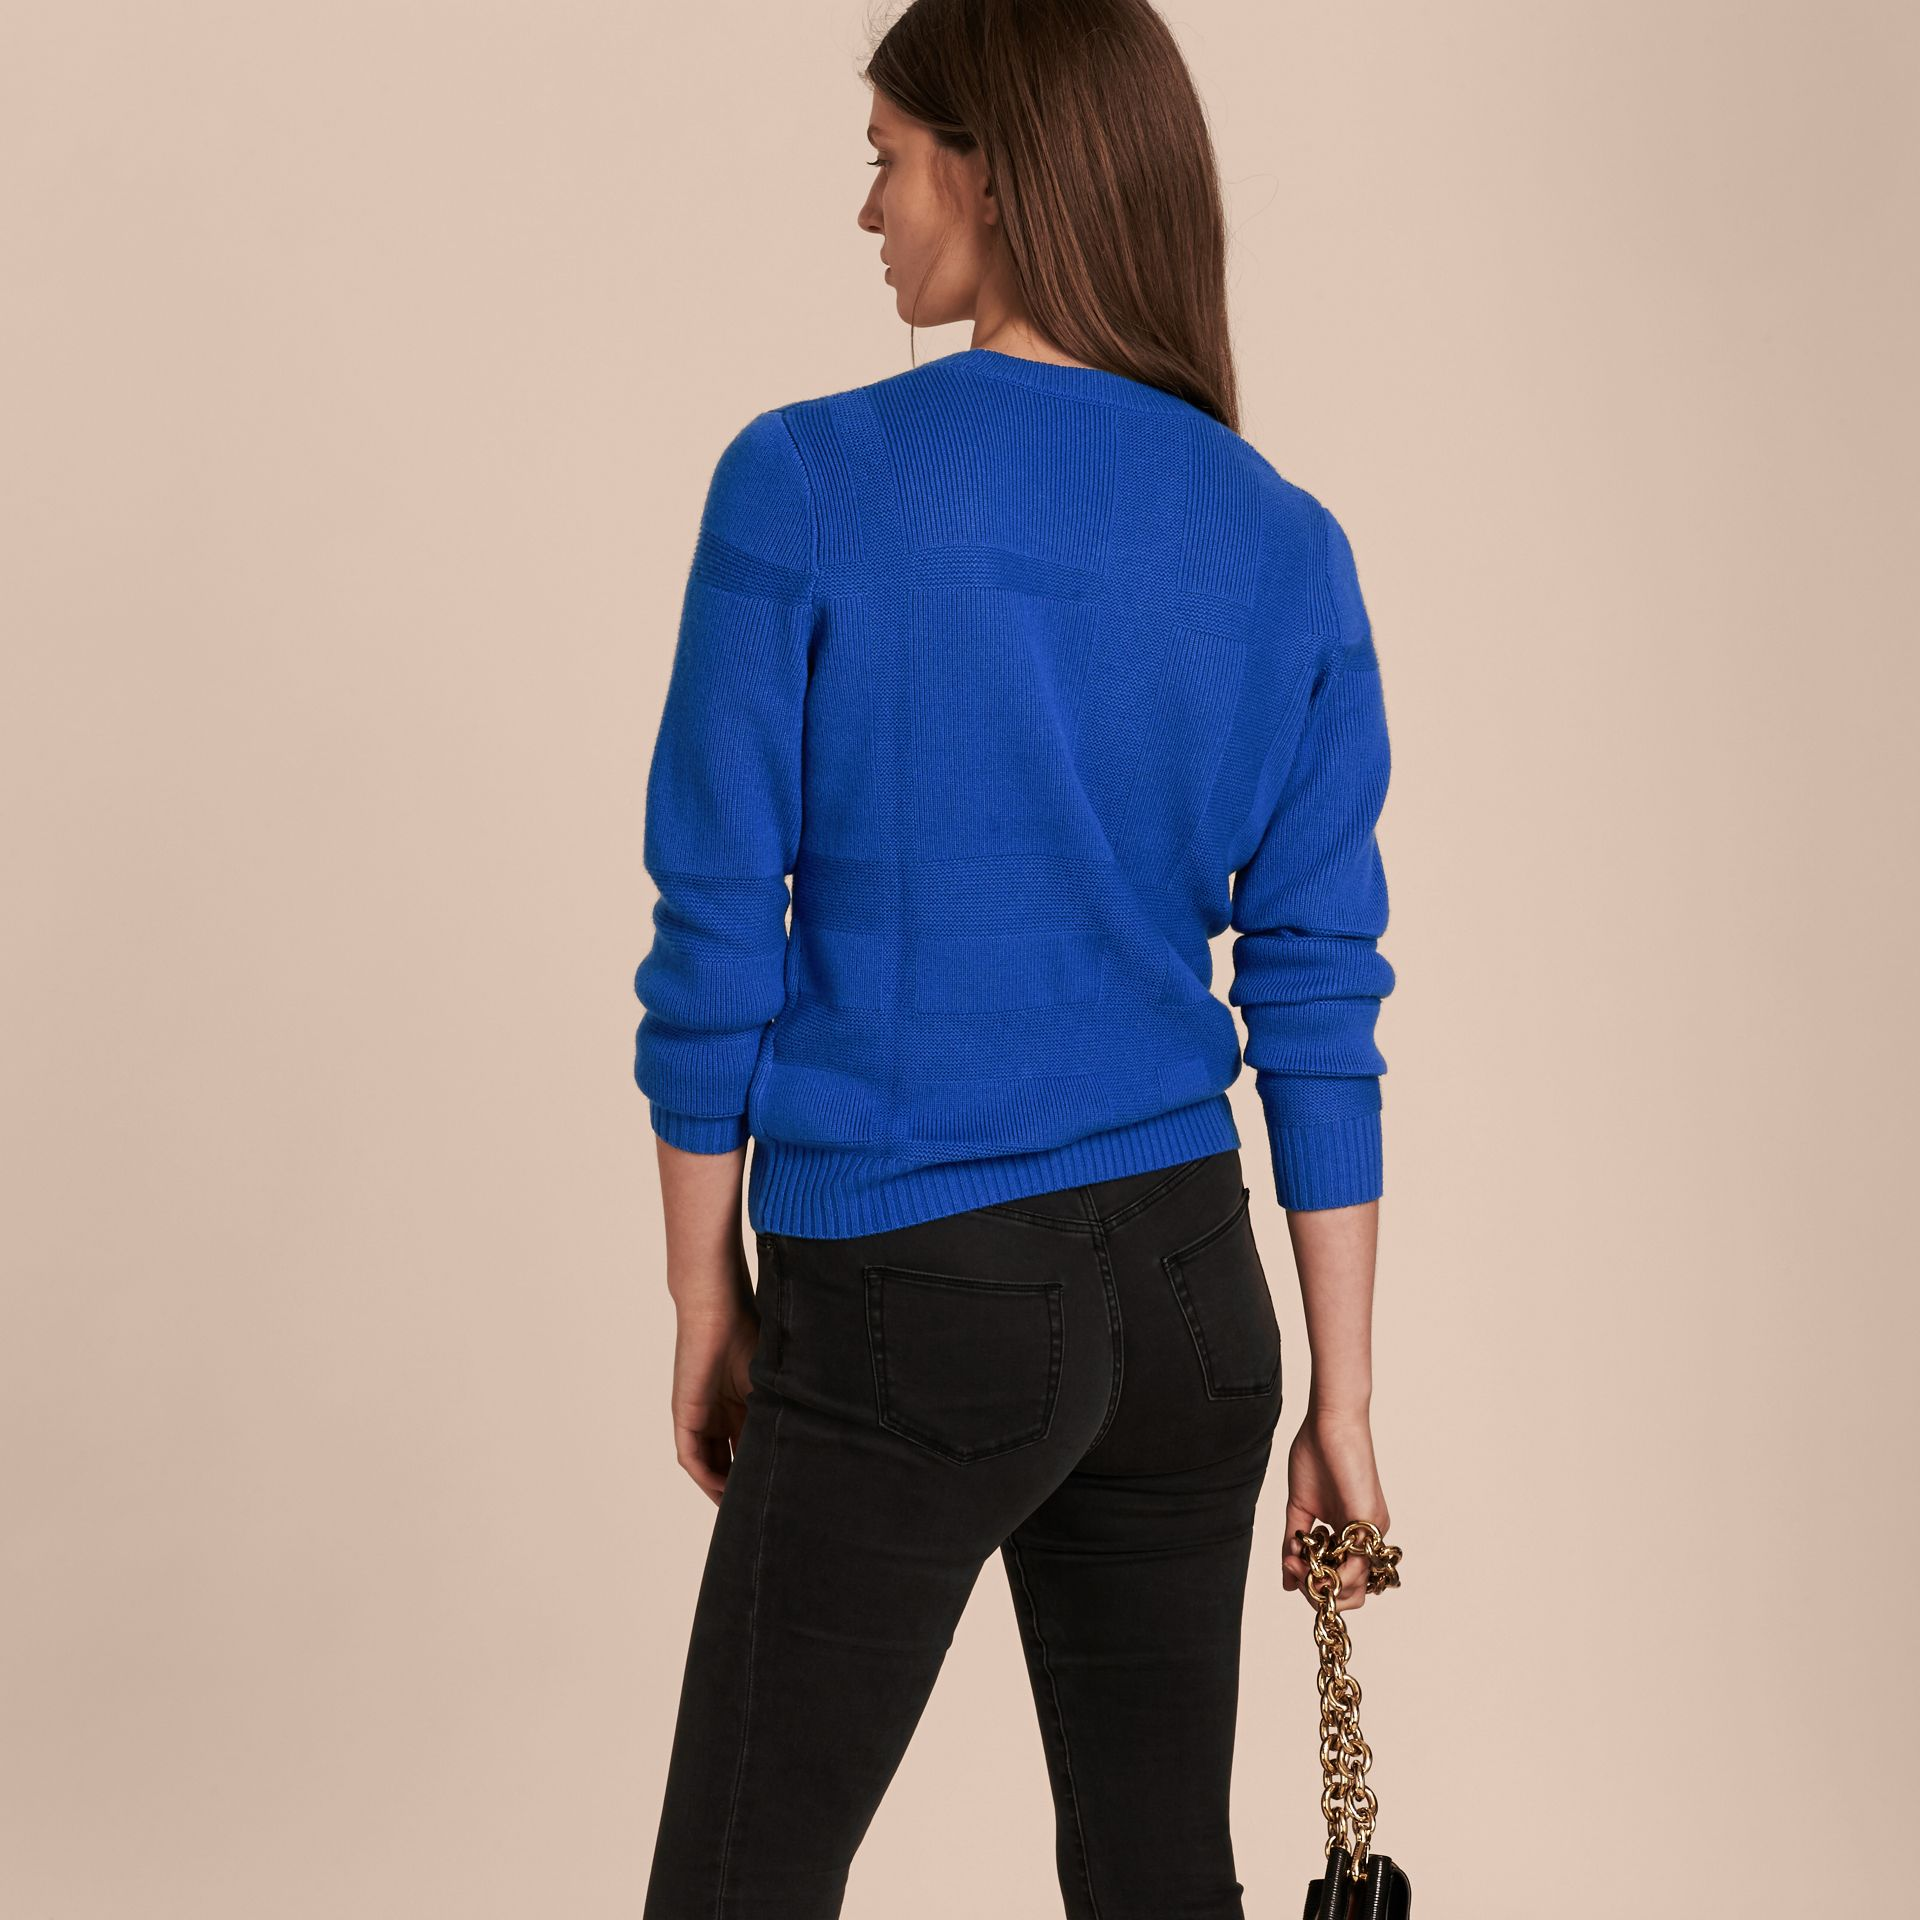 Sapphire blue Check-knit Wool Cashmere Sweater Sapphire Blue - gallery image 3